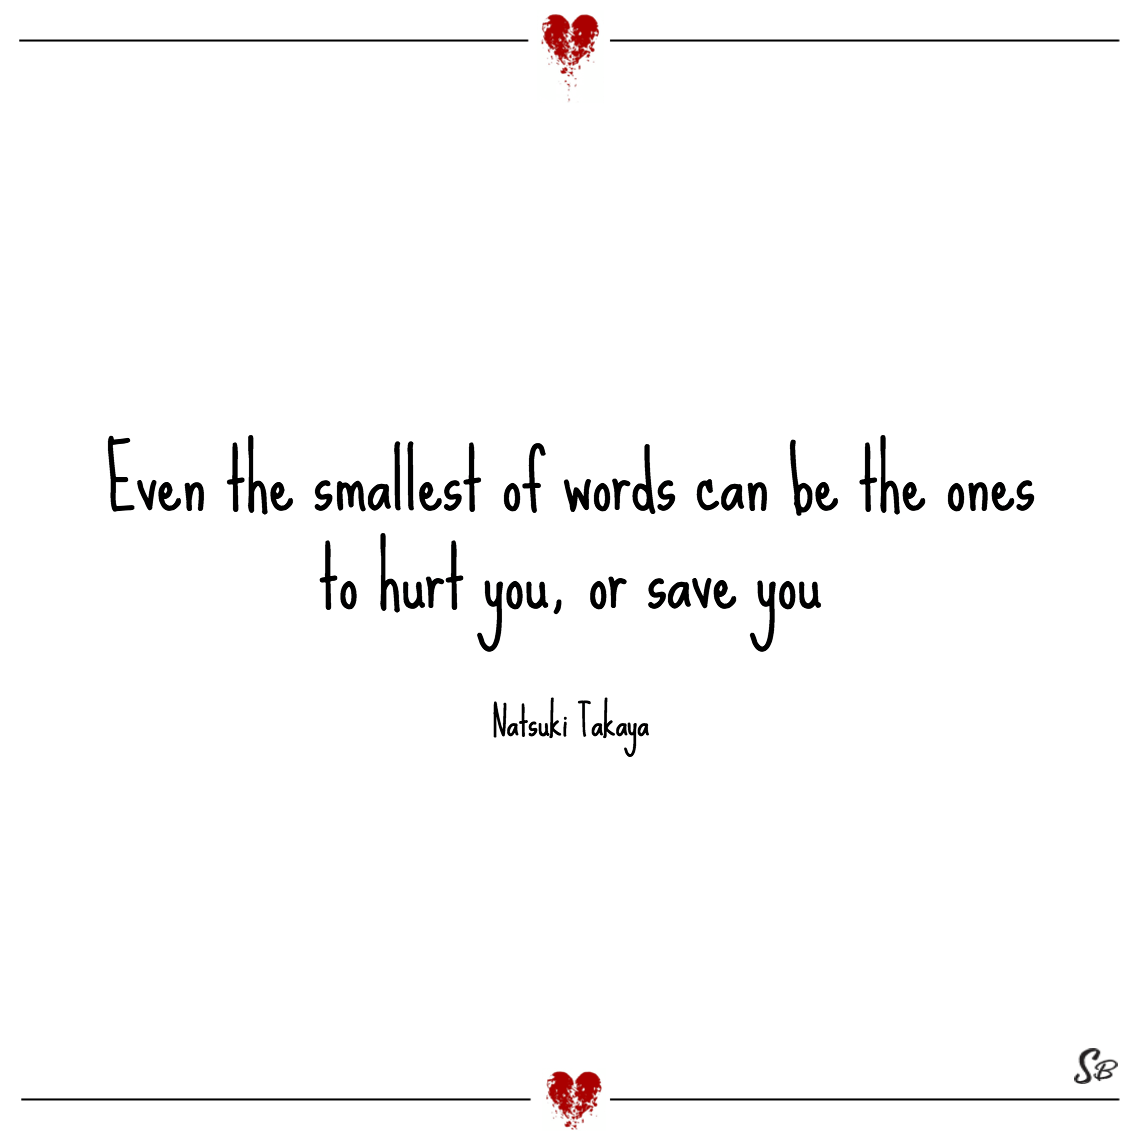 Even the smallest of words can be the ones to hurt you, or save you natsuki takaya